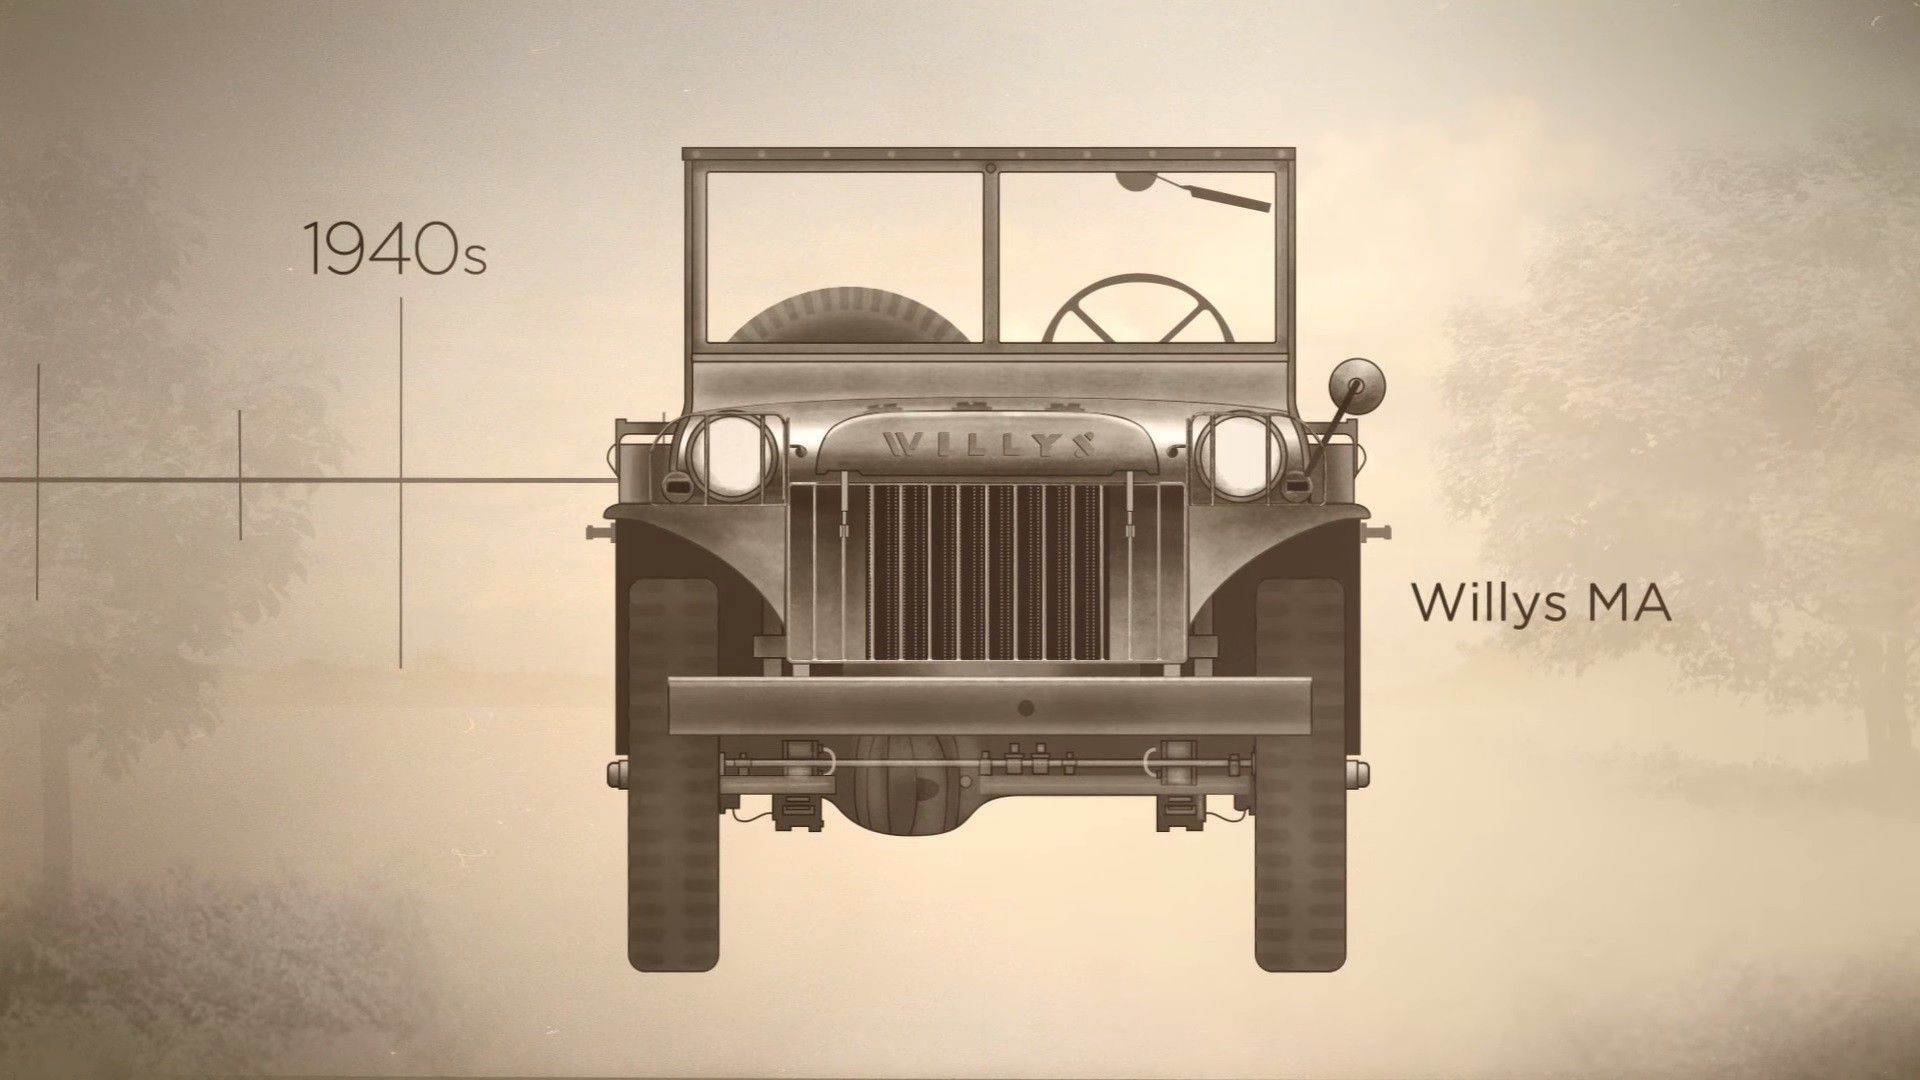 Short Clip Shows Jeep S Evolution From The 1941 Willys Ma To The